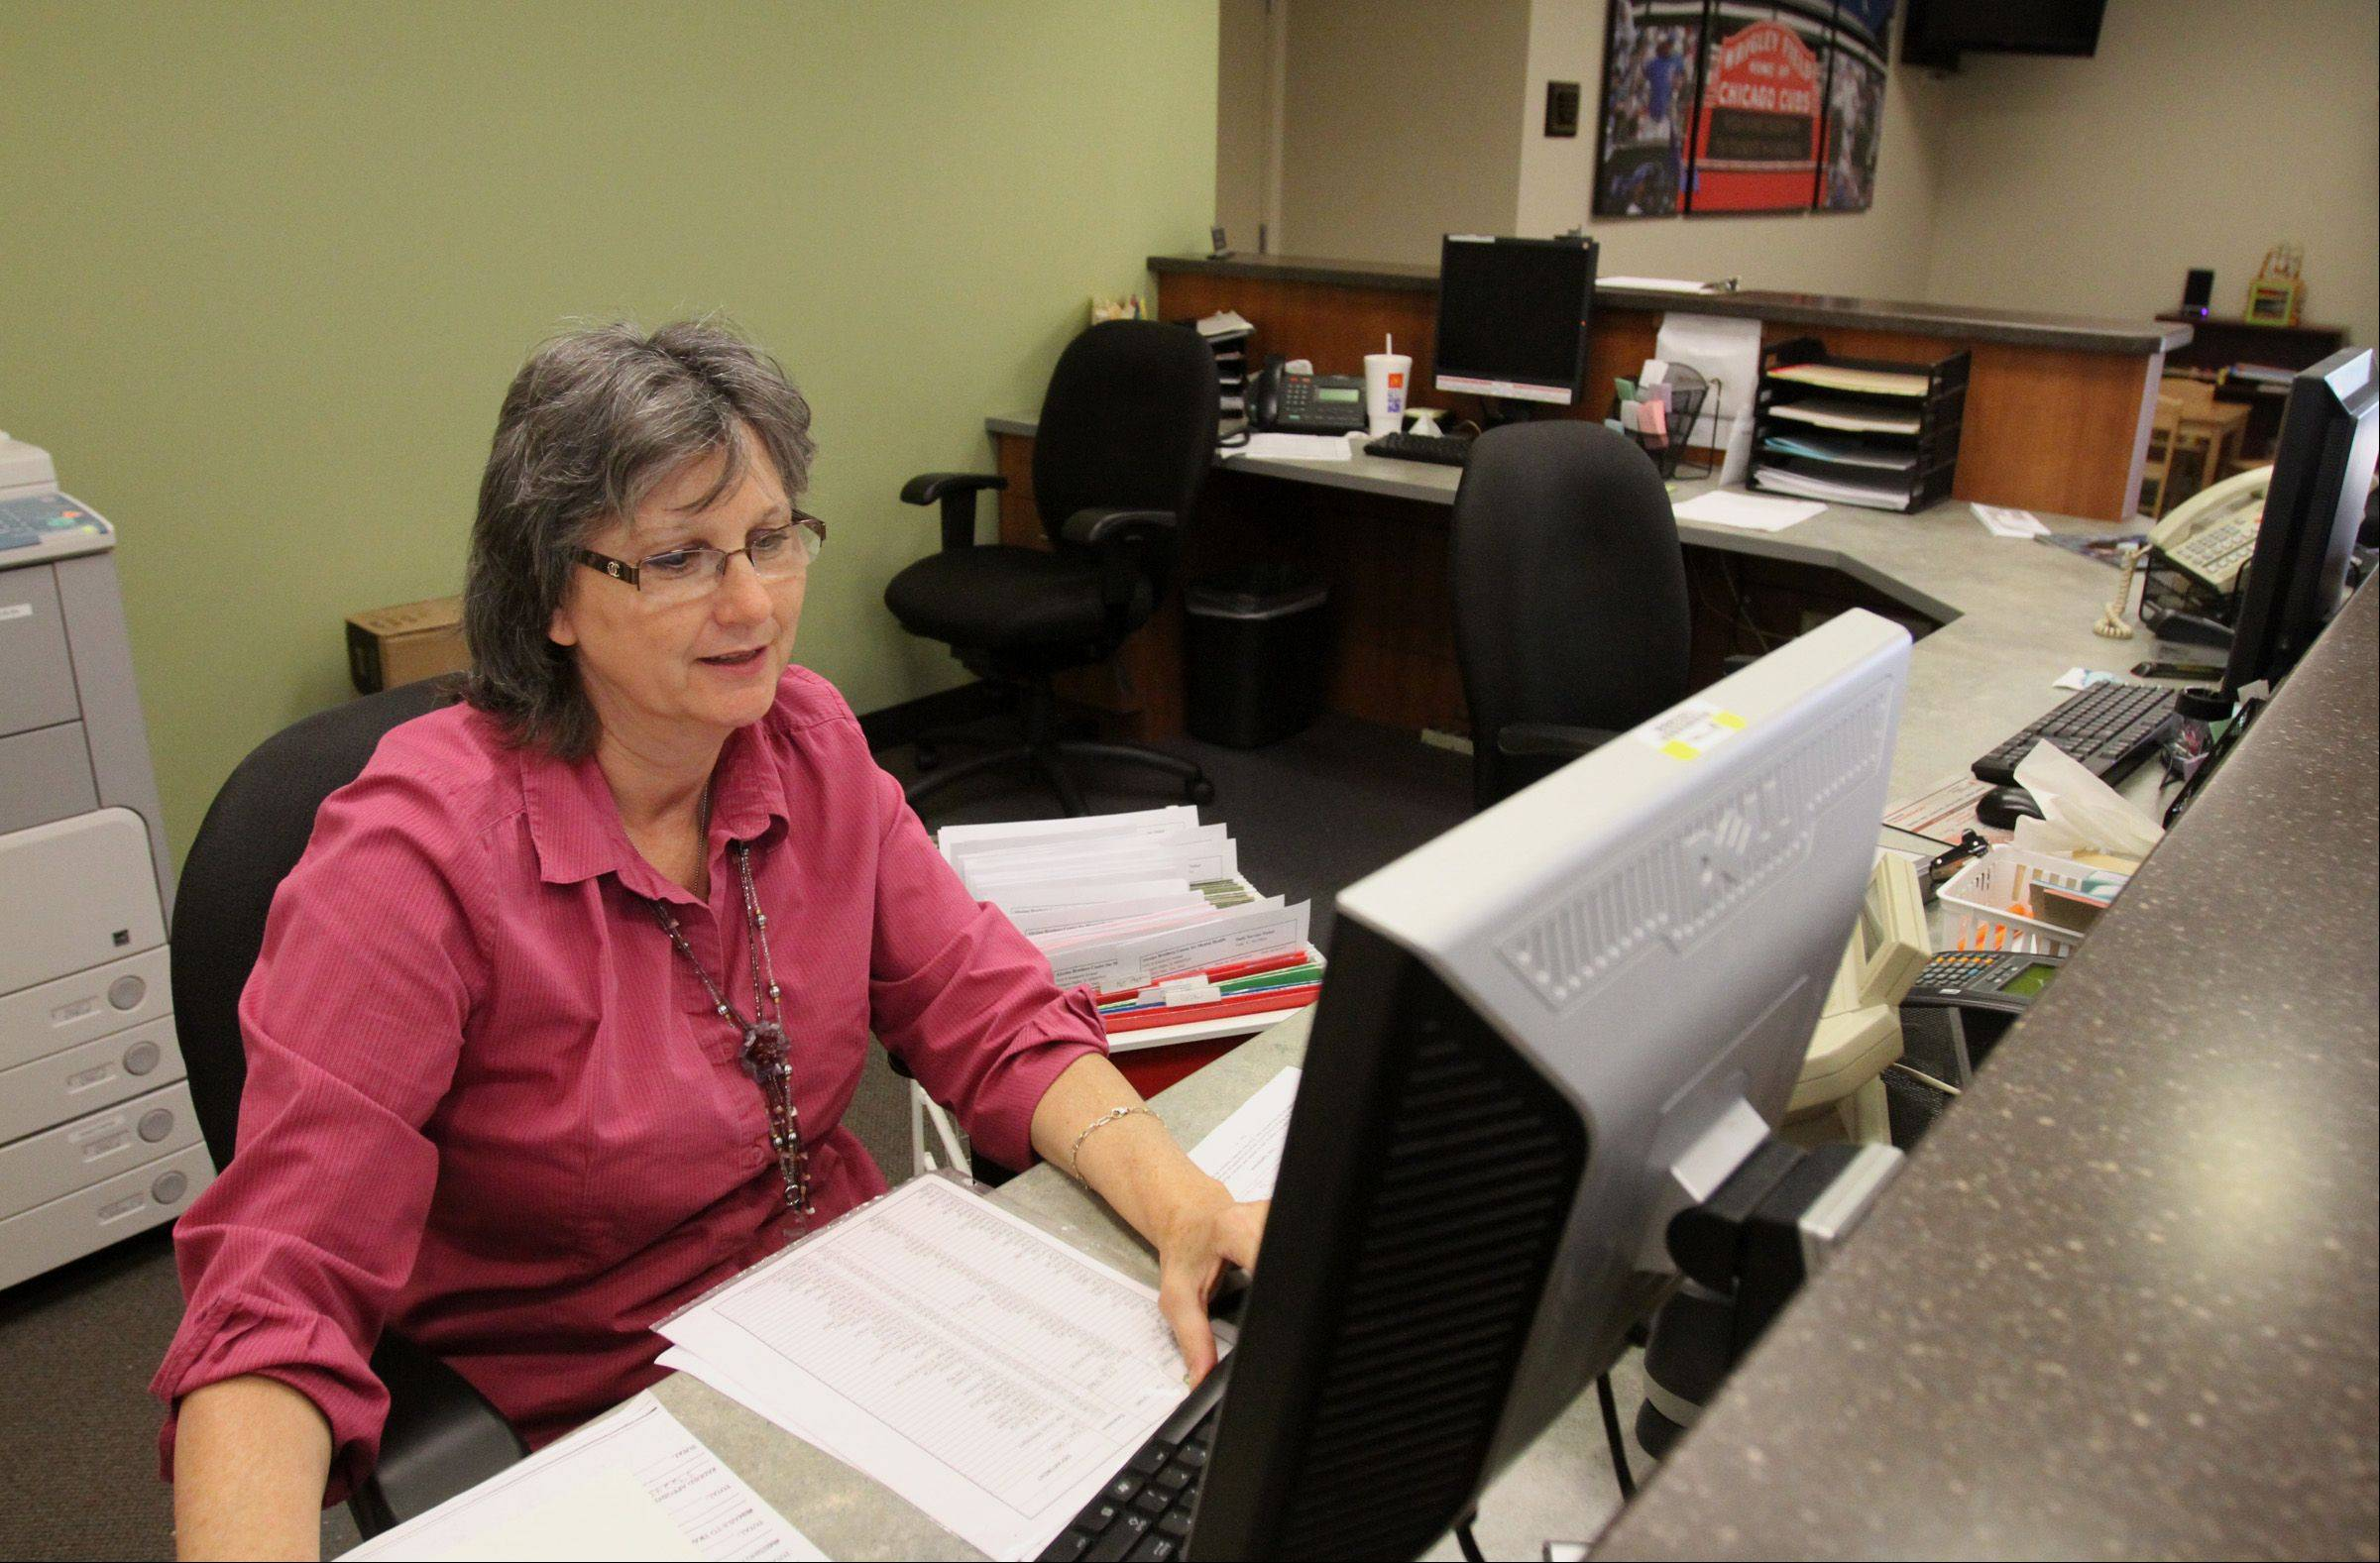 Judy Jackowiak is the receptionist at the Alexian Brothers Center for Mental Health in Arlington Heights.